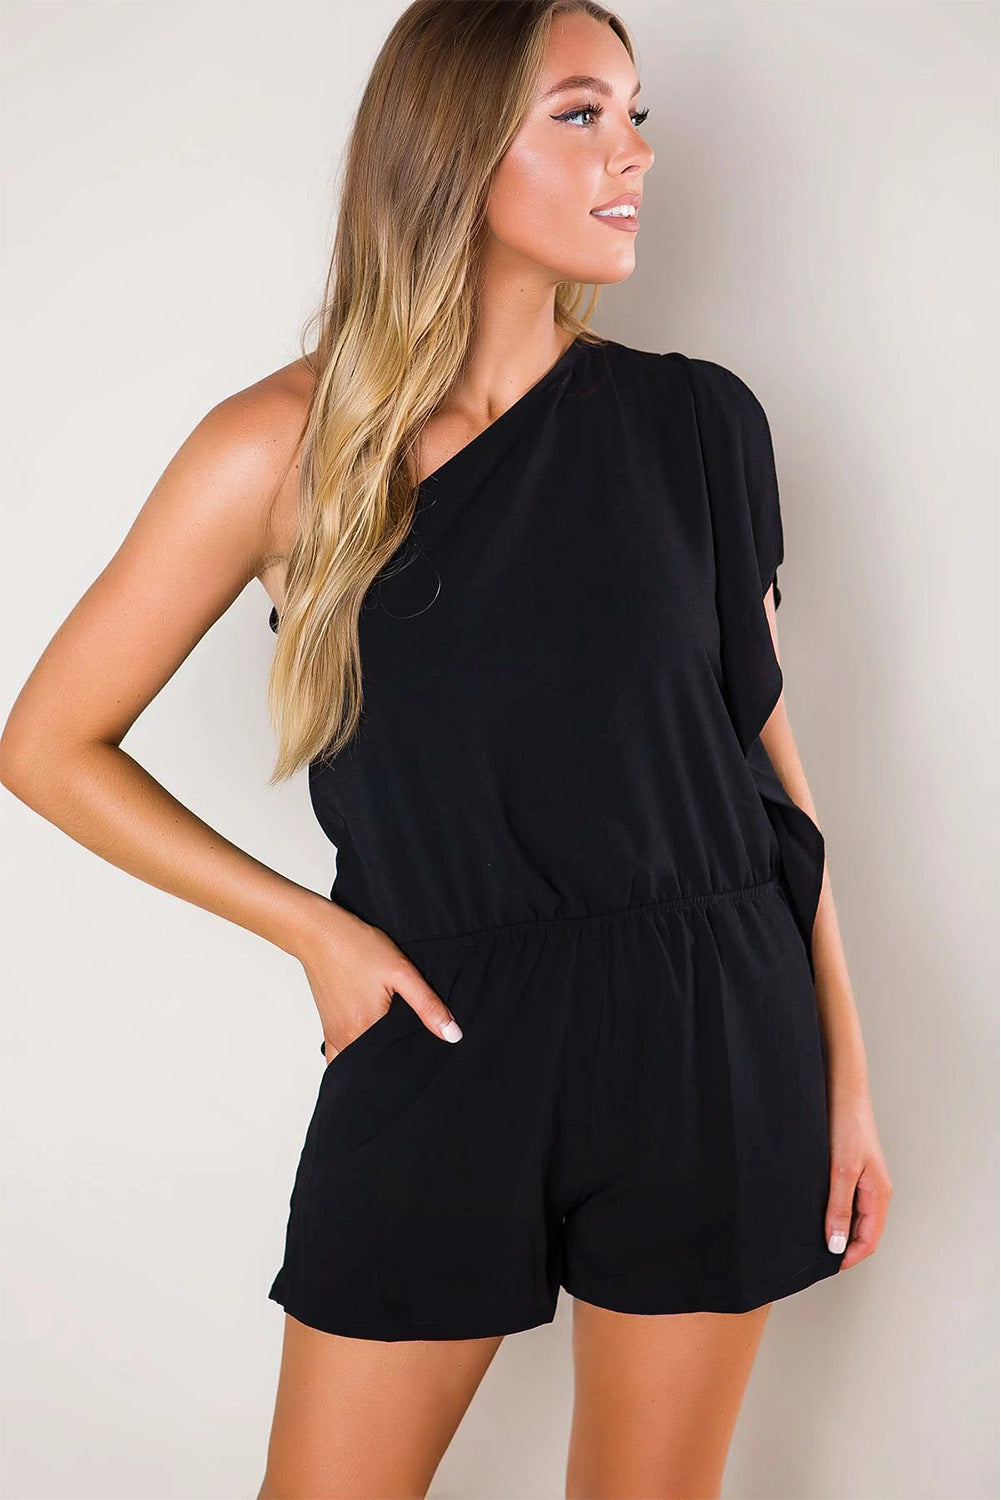 Black One-shoulder Romper with Pockets - JT's Designer Fashion